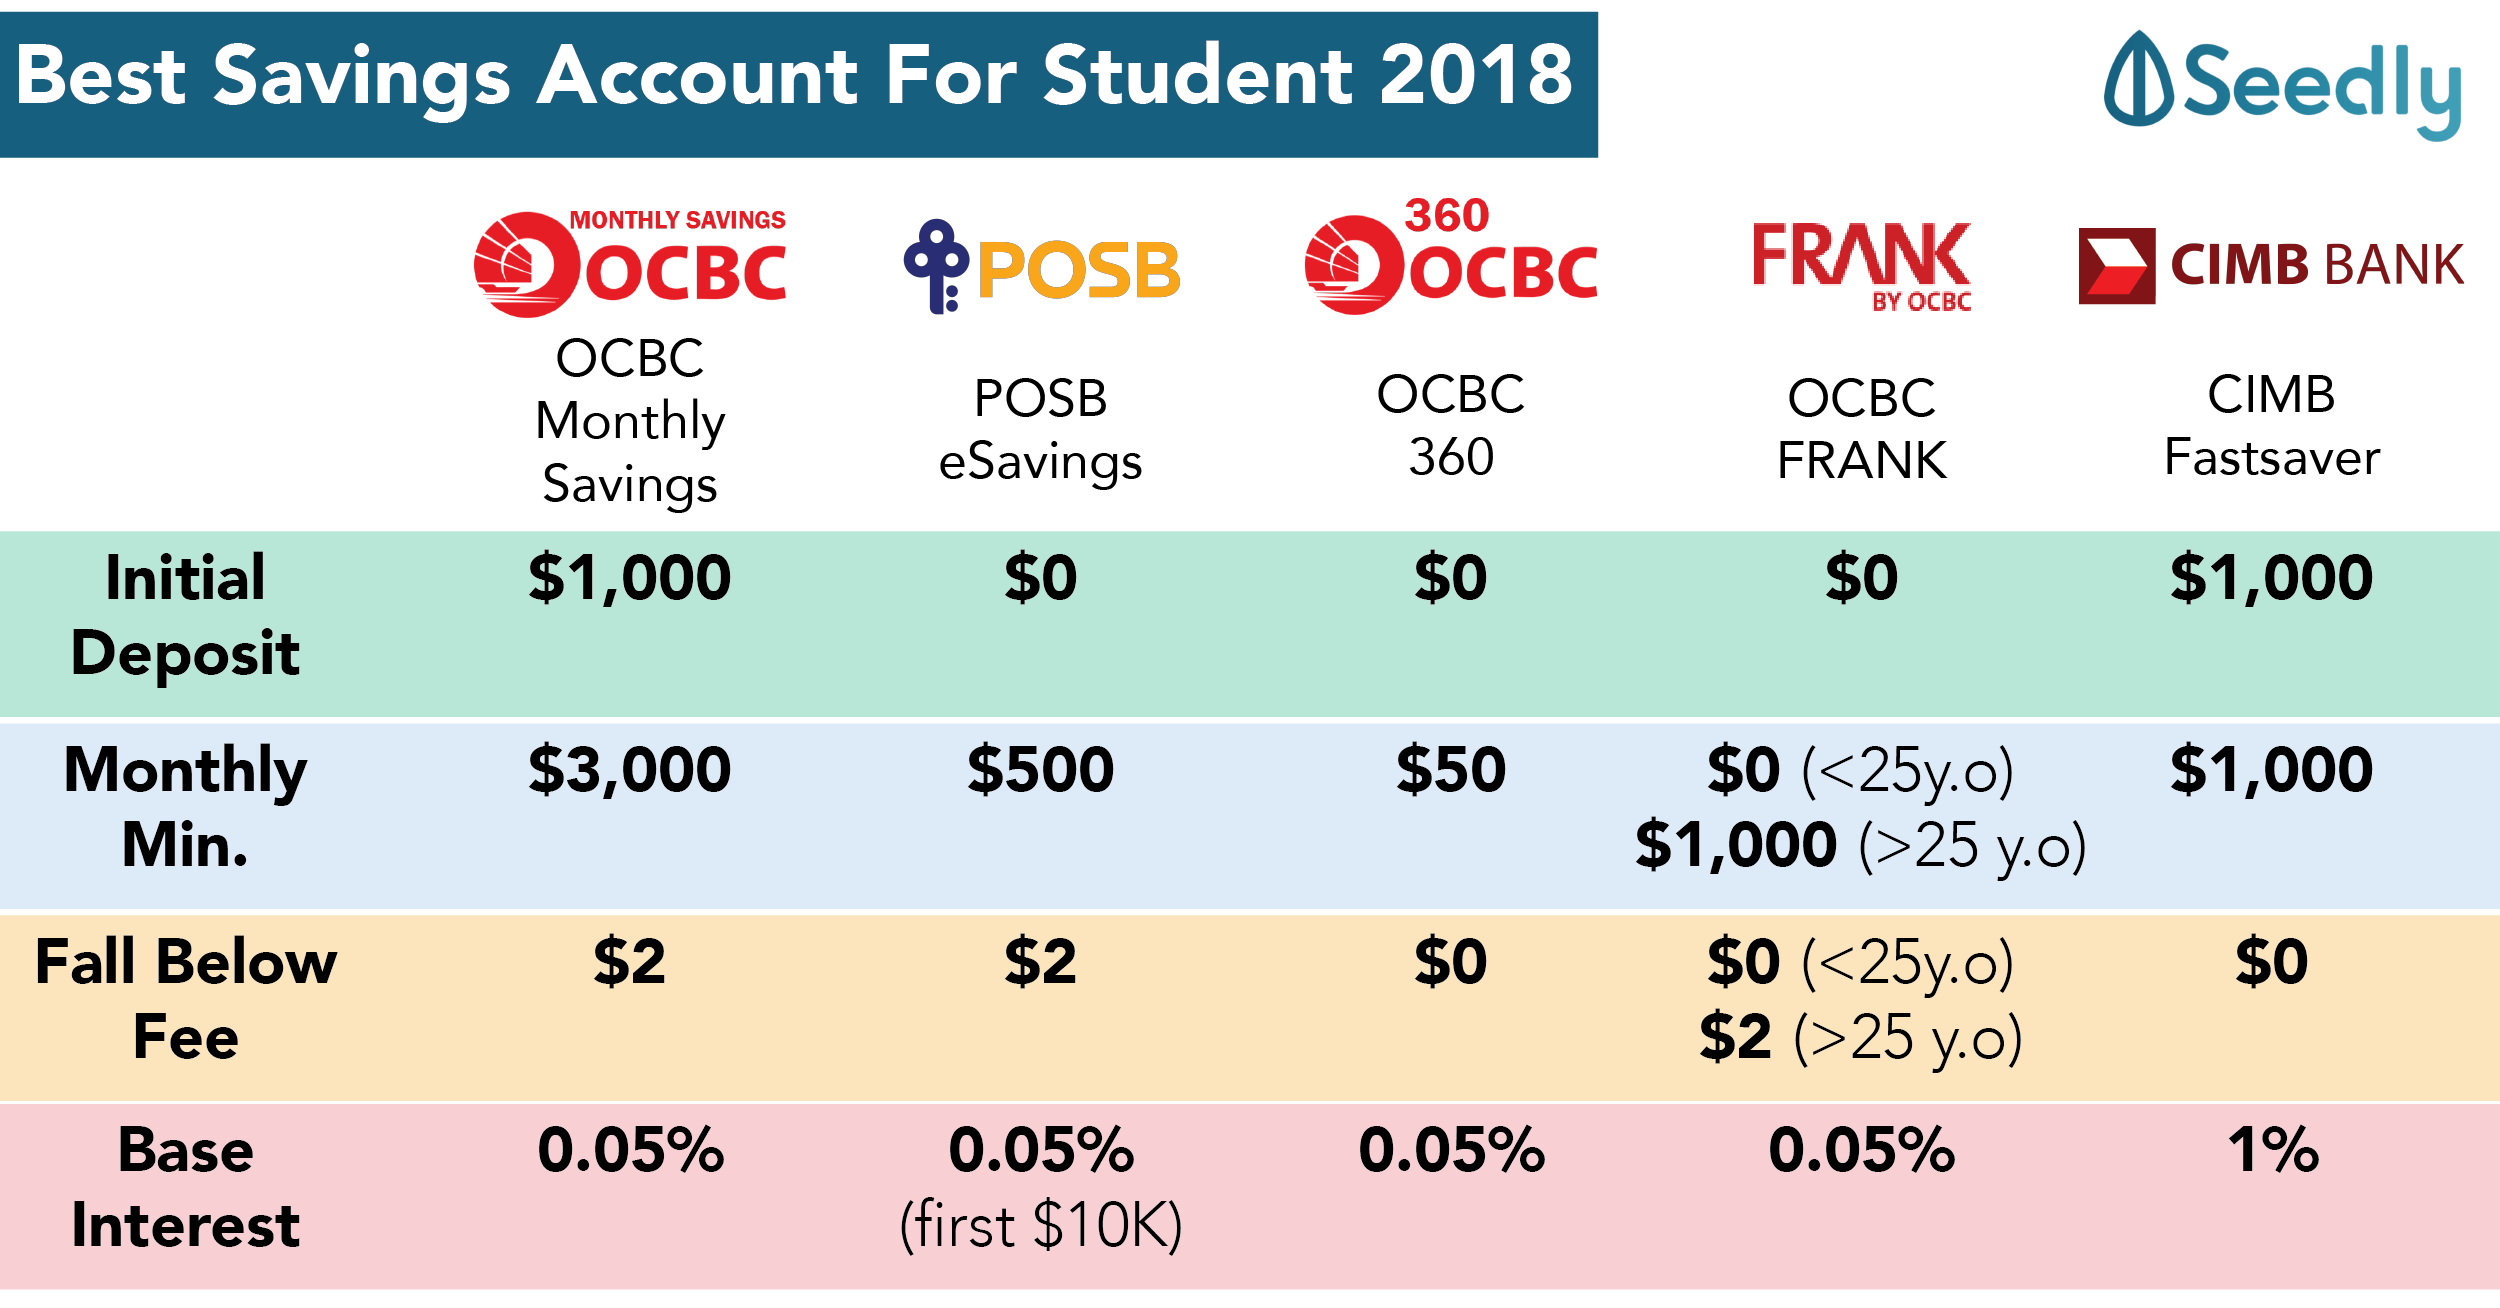 Cheat Sheet: Best Saving Accounts For Students 2018